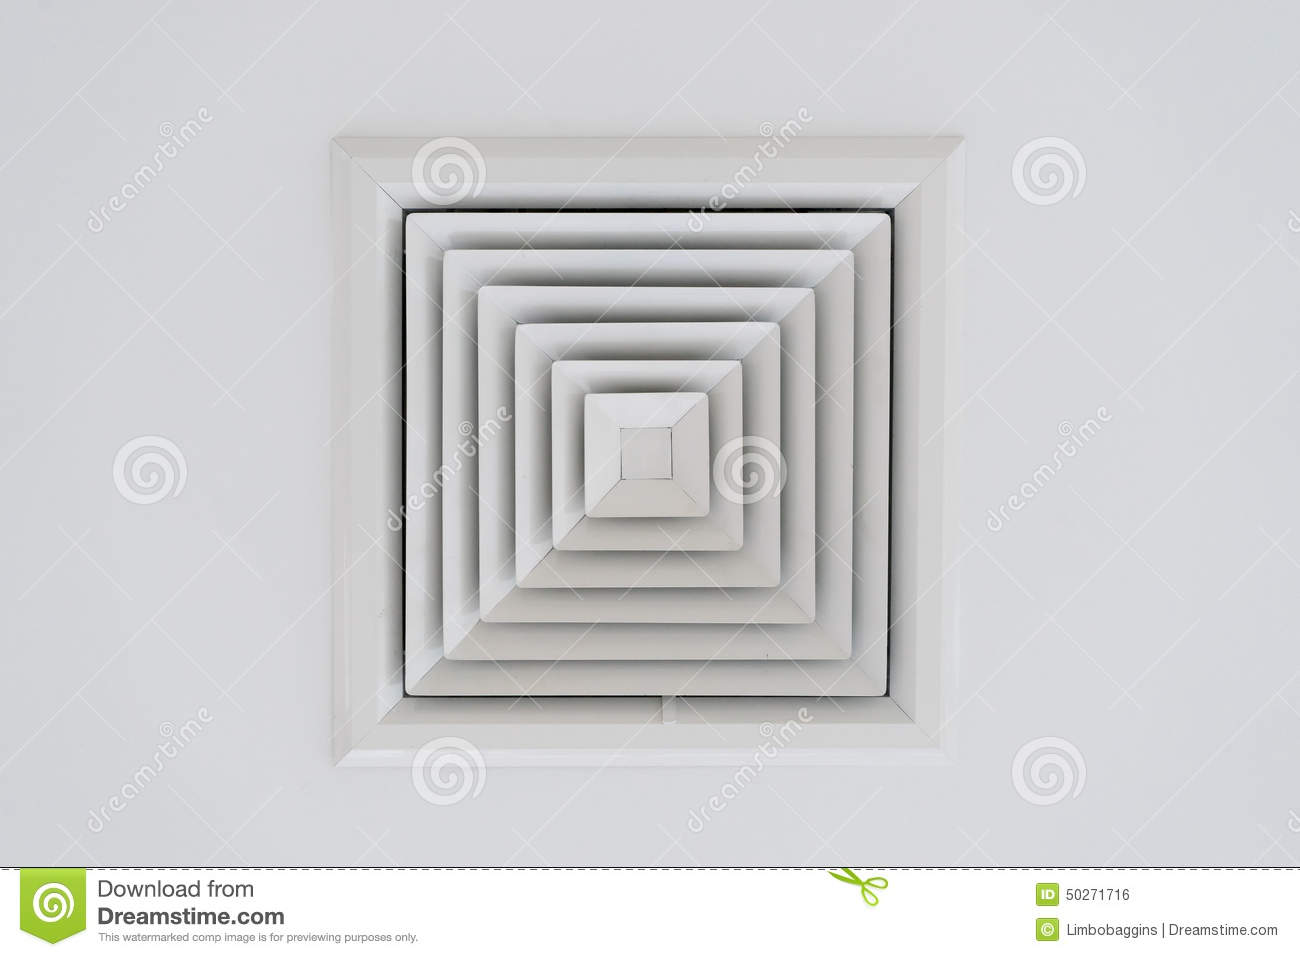 Ceiling Ventilation Of Air Condition Stock Photo.